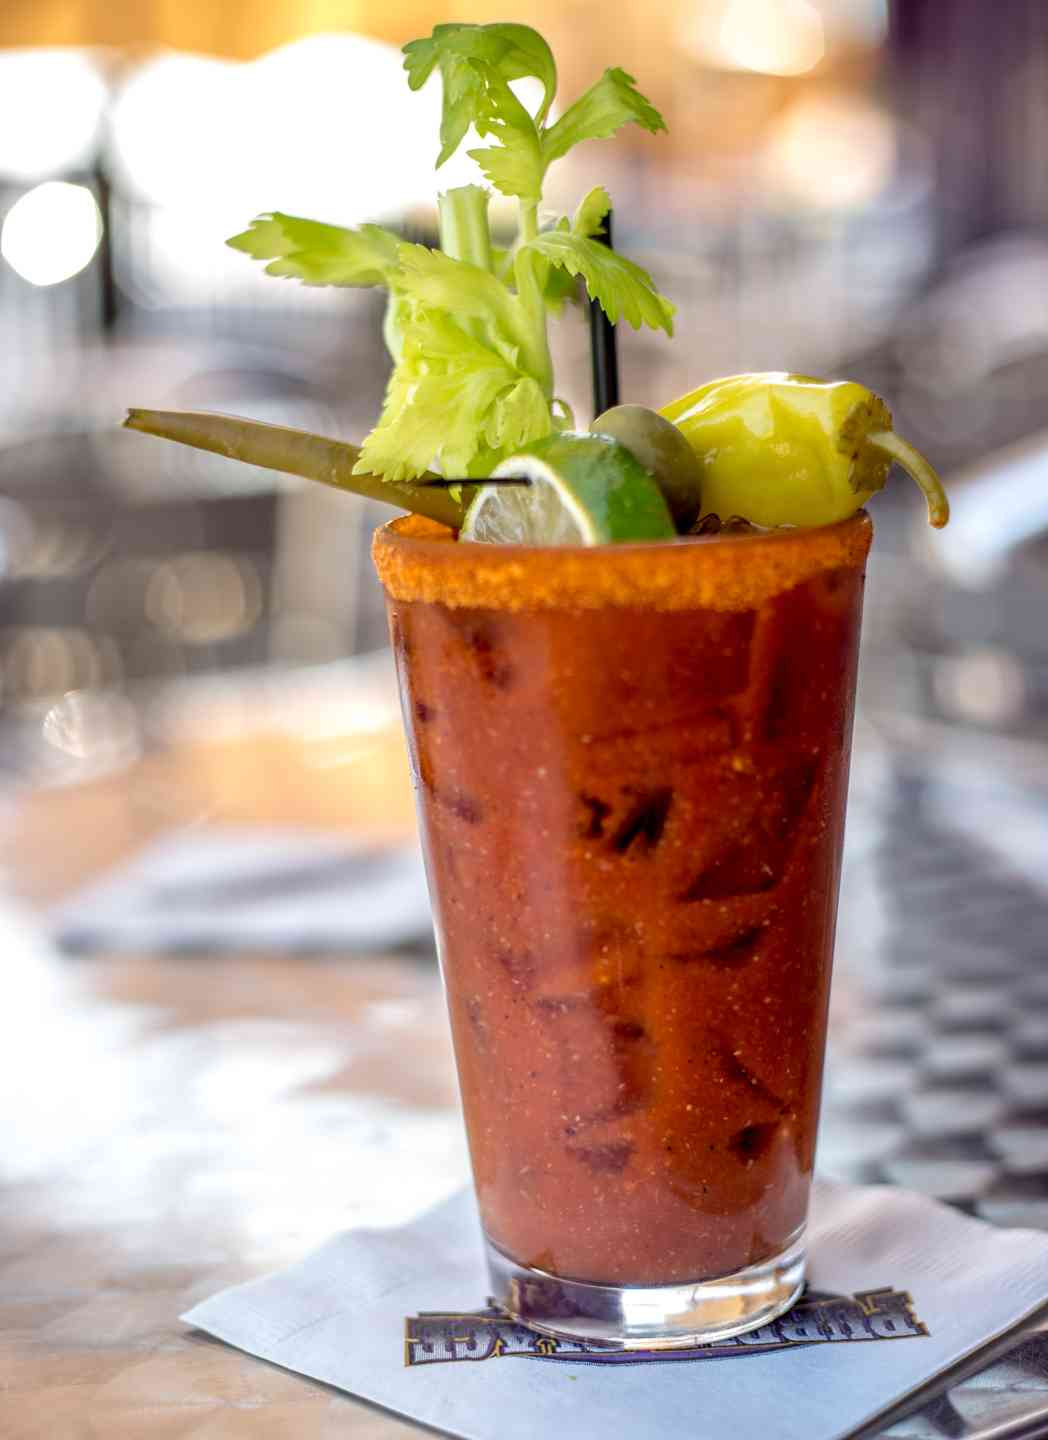 The Purp's Bloody Mary